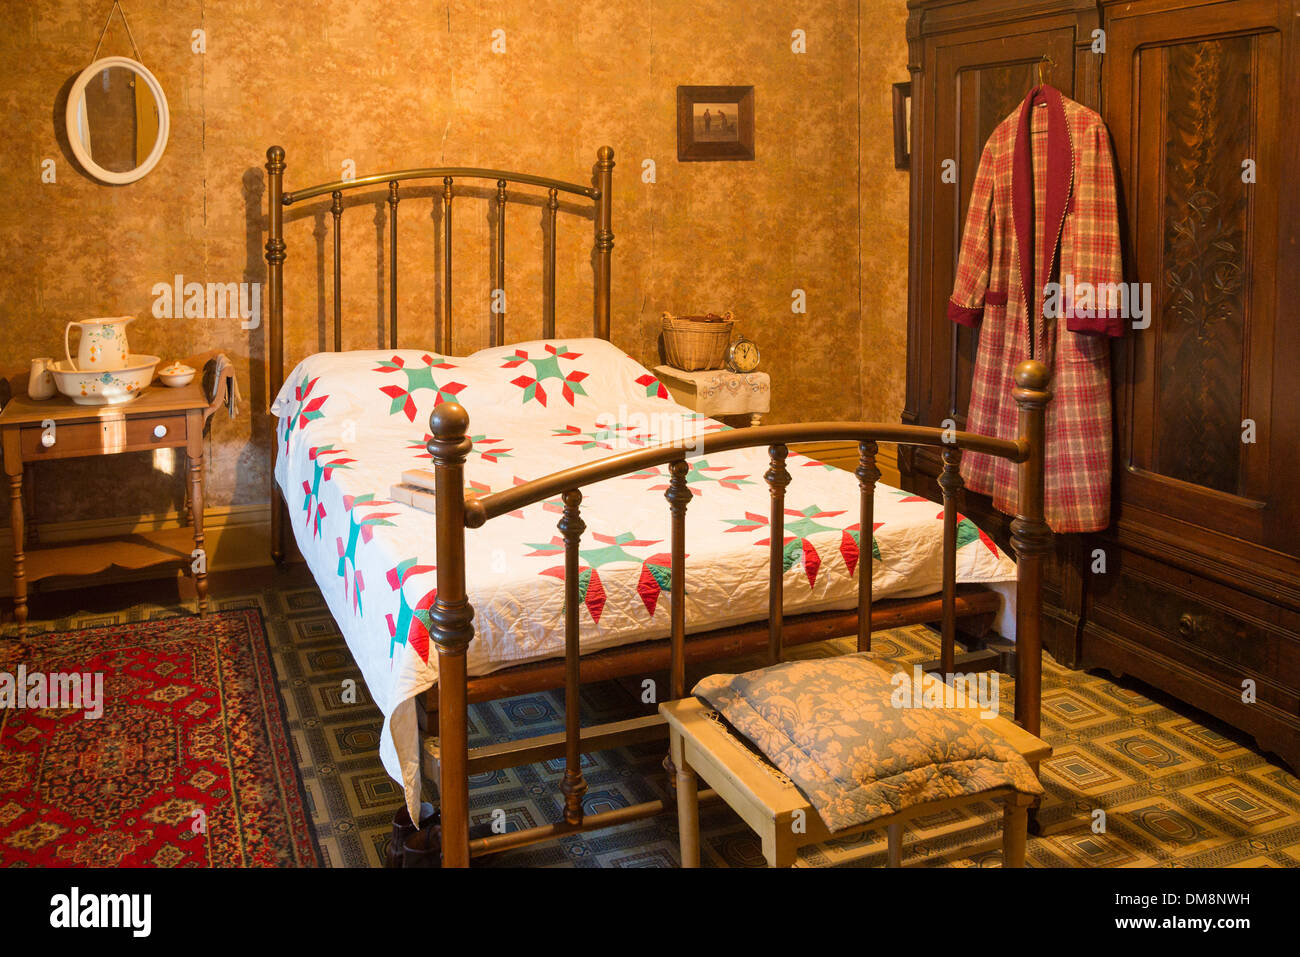 Heritage bedroom with brass bed and quilt, Burnaby Village Museum, Burnaby, British Columbia, Canada - Stock Image